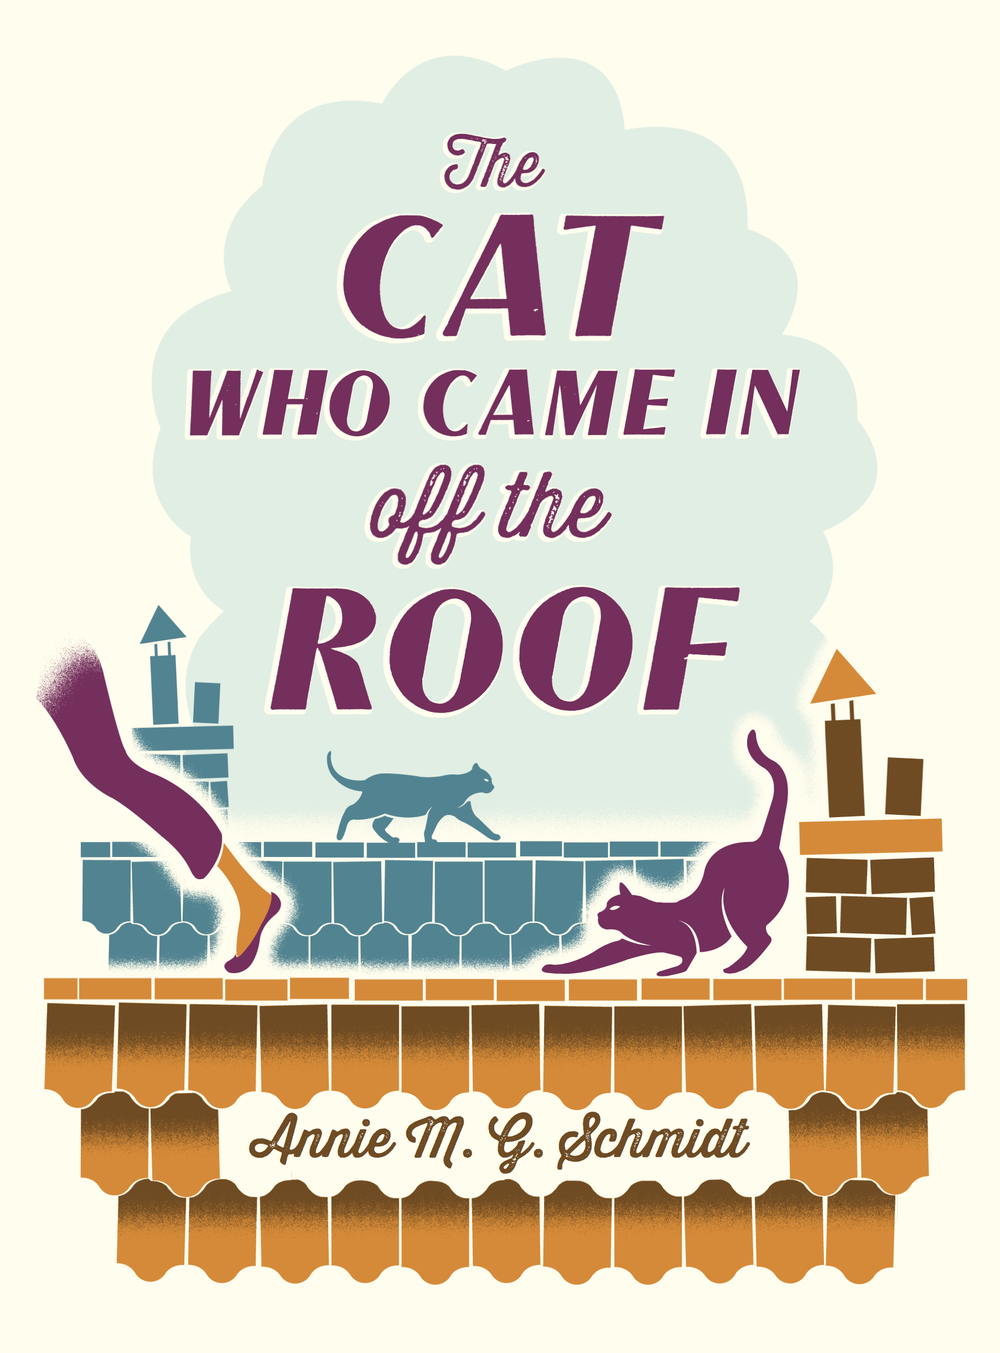 The Cat Who Came in off the Roof  By Annie M. G. Schmidt  Translated from the Dutch by David Colmer, Published on 3rd July 2014